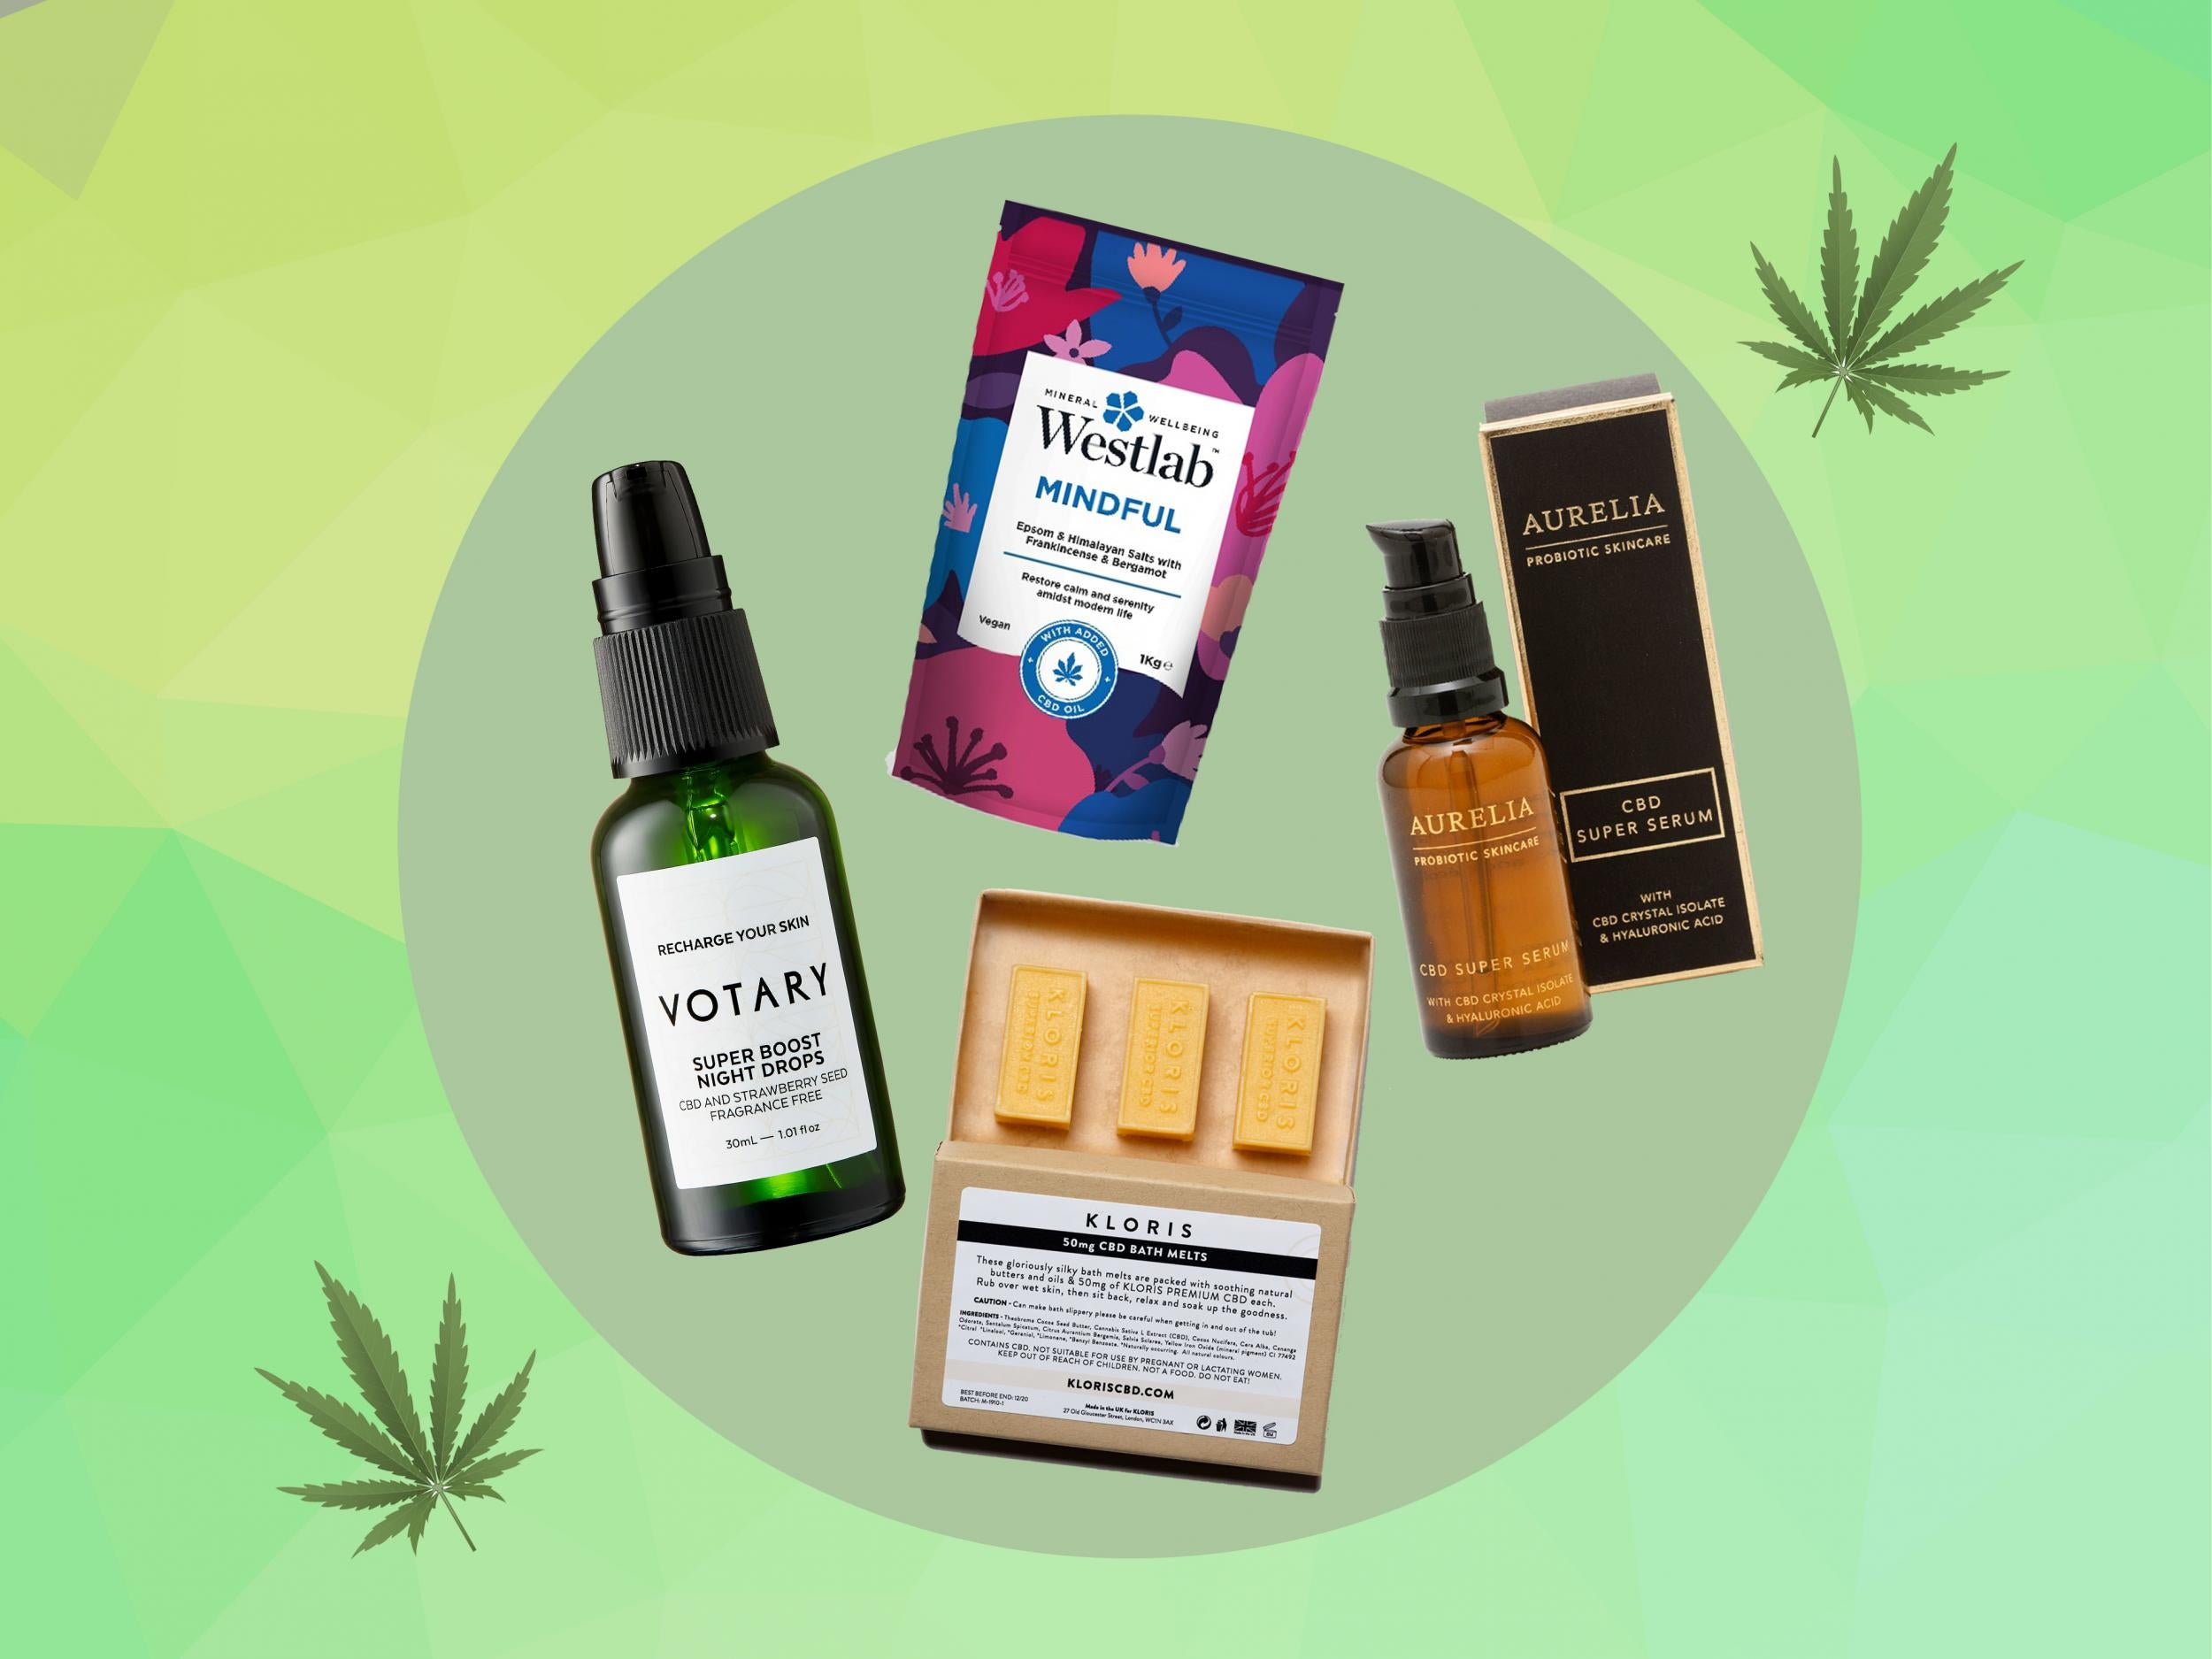 Best Cbd Beauty Products To Help You Relax From Oils To Serums The Independent